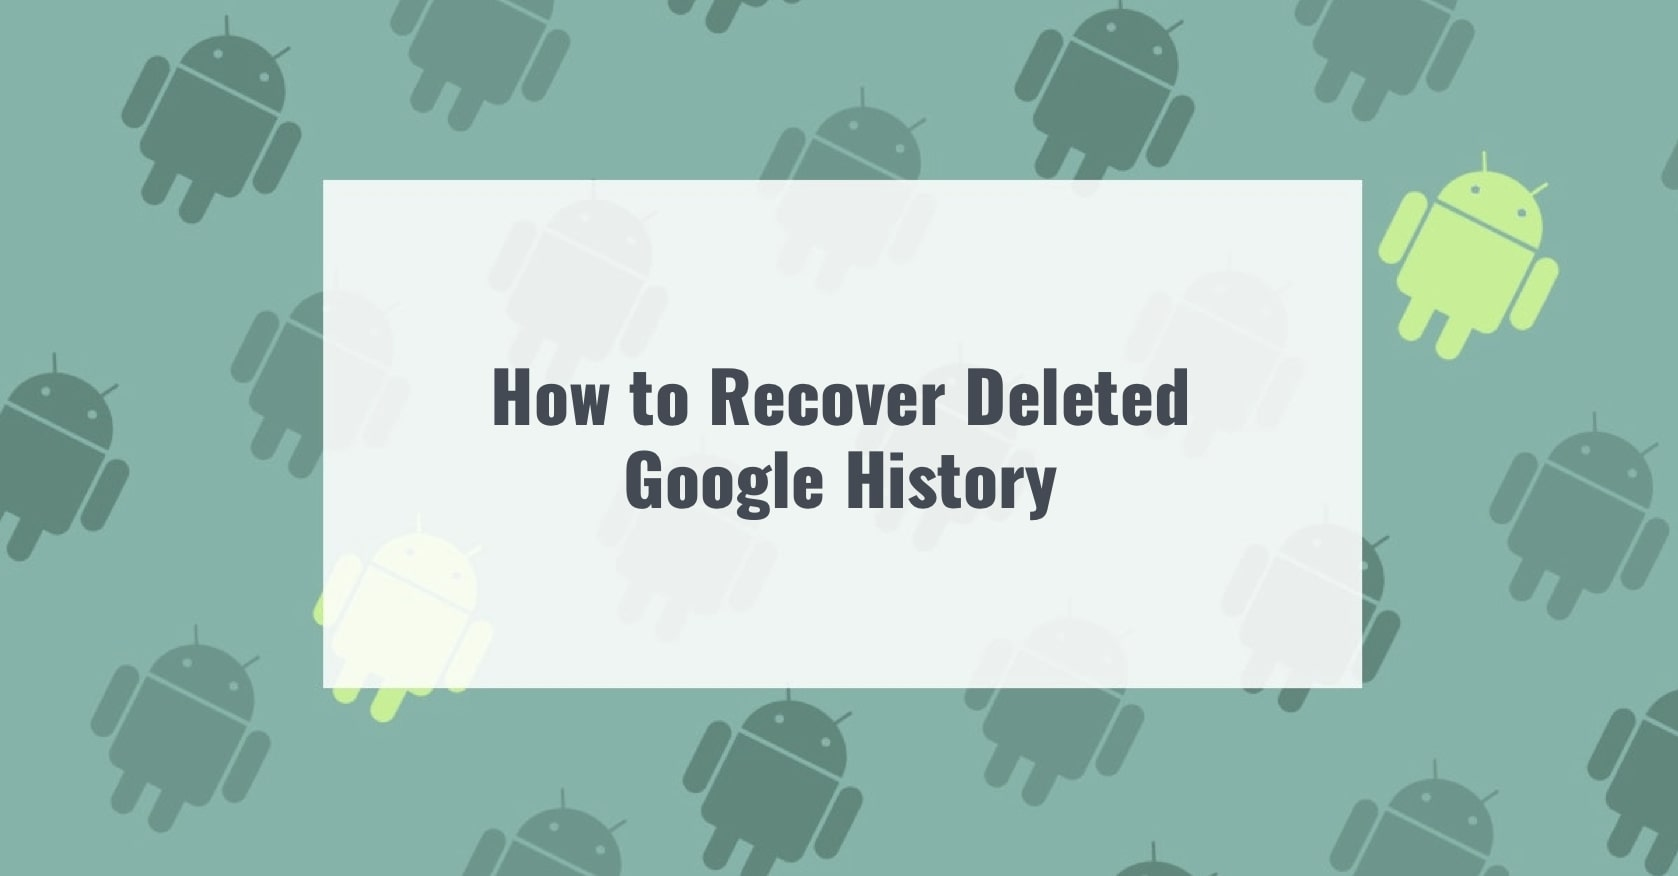 How to Recover Deleted Google History